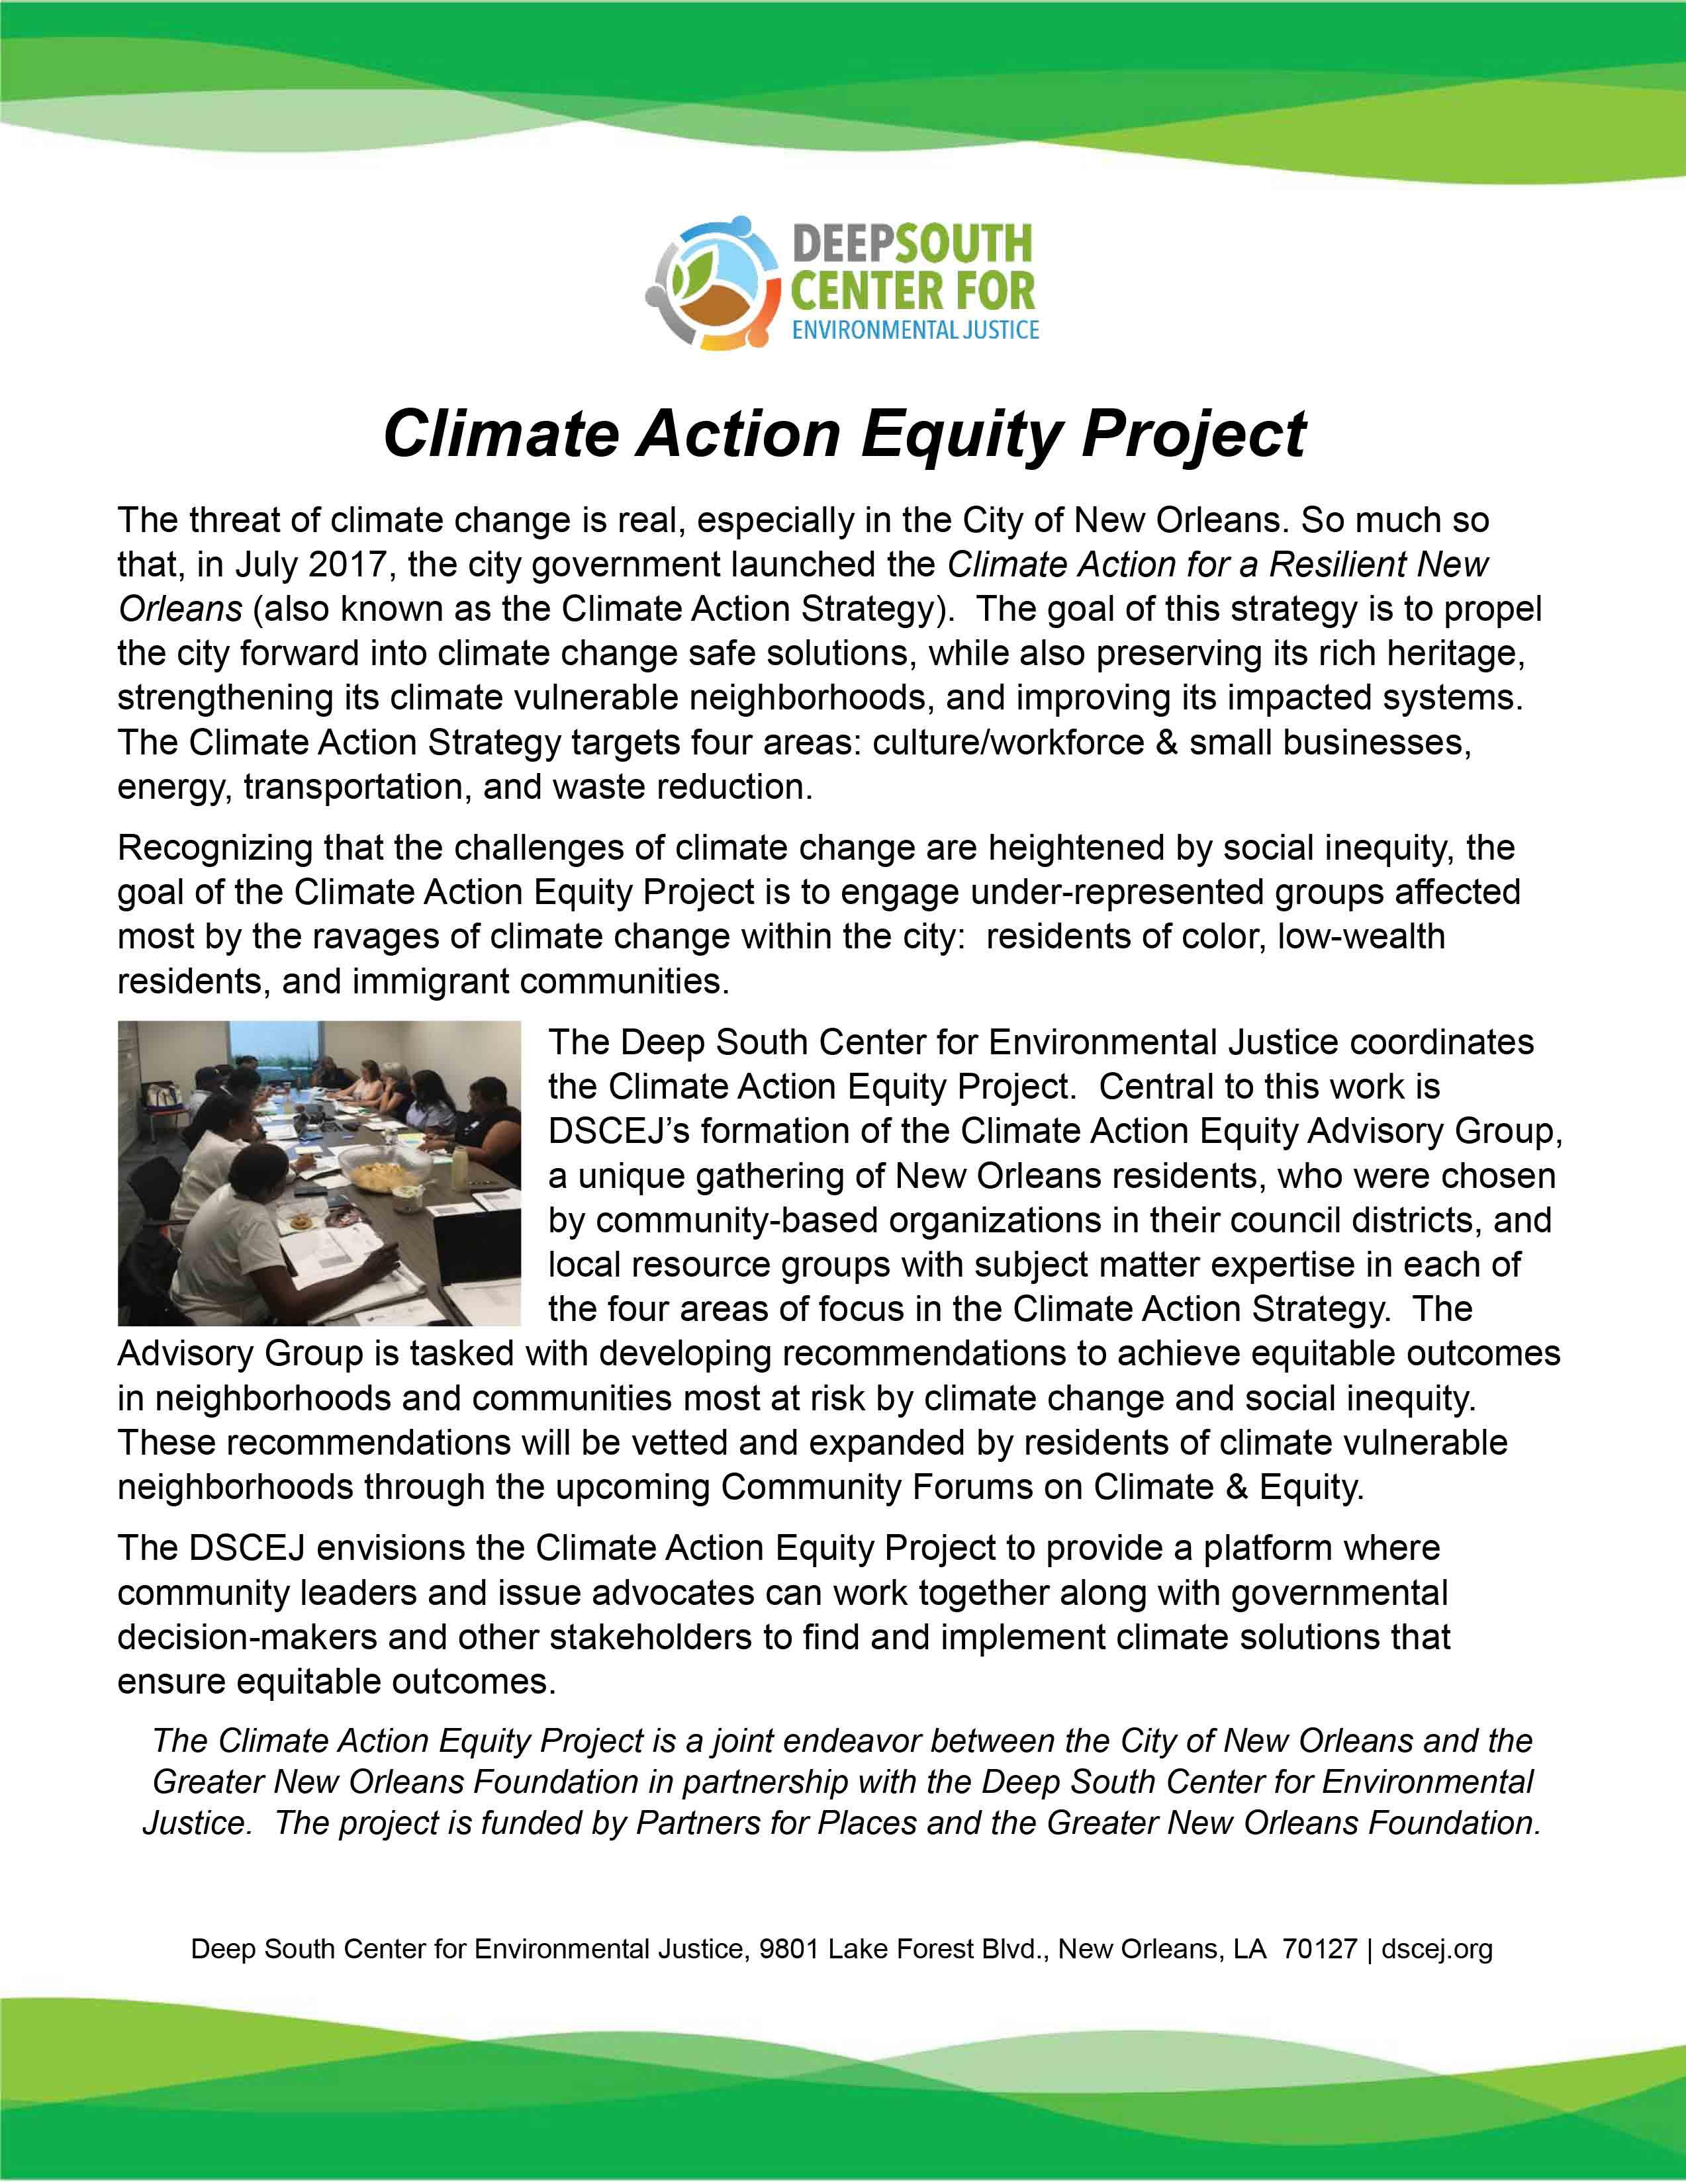 DSCEJ-Climate-Action-Equity-Project-Profile